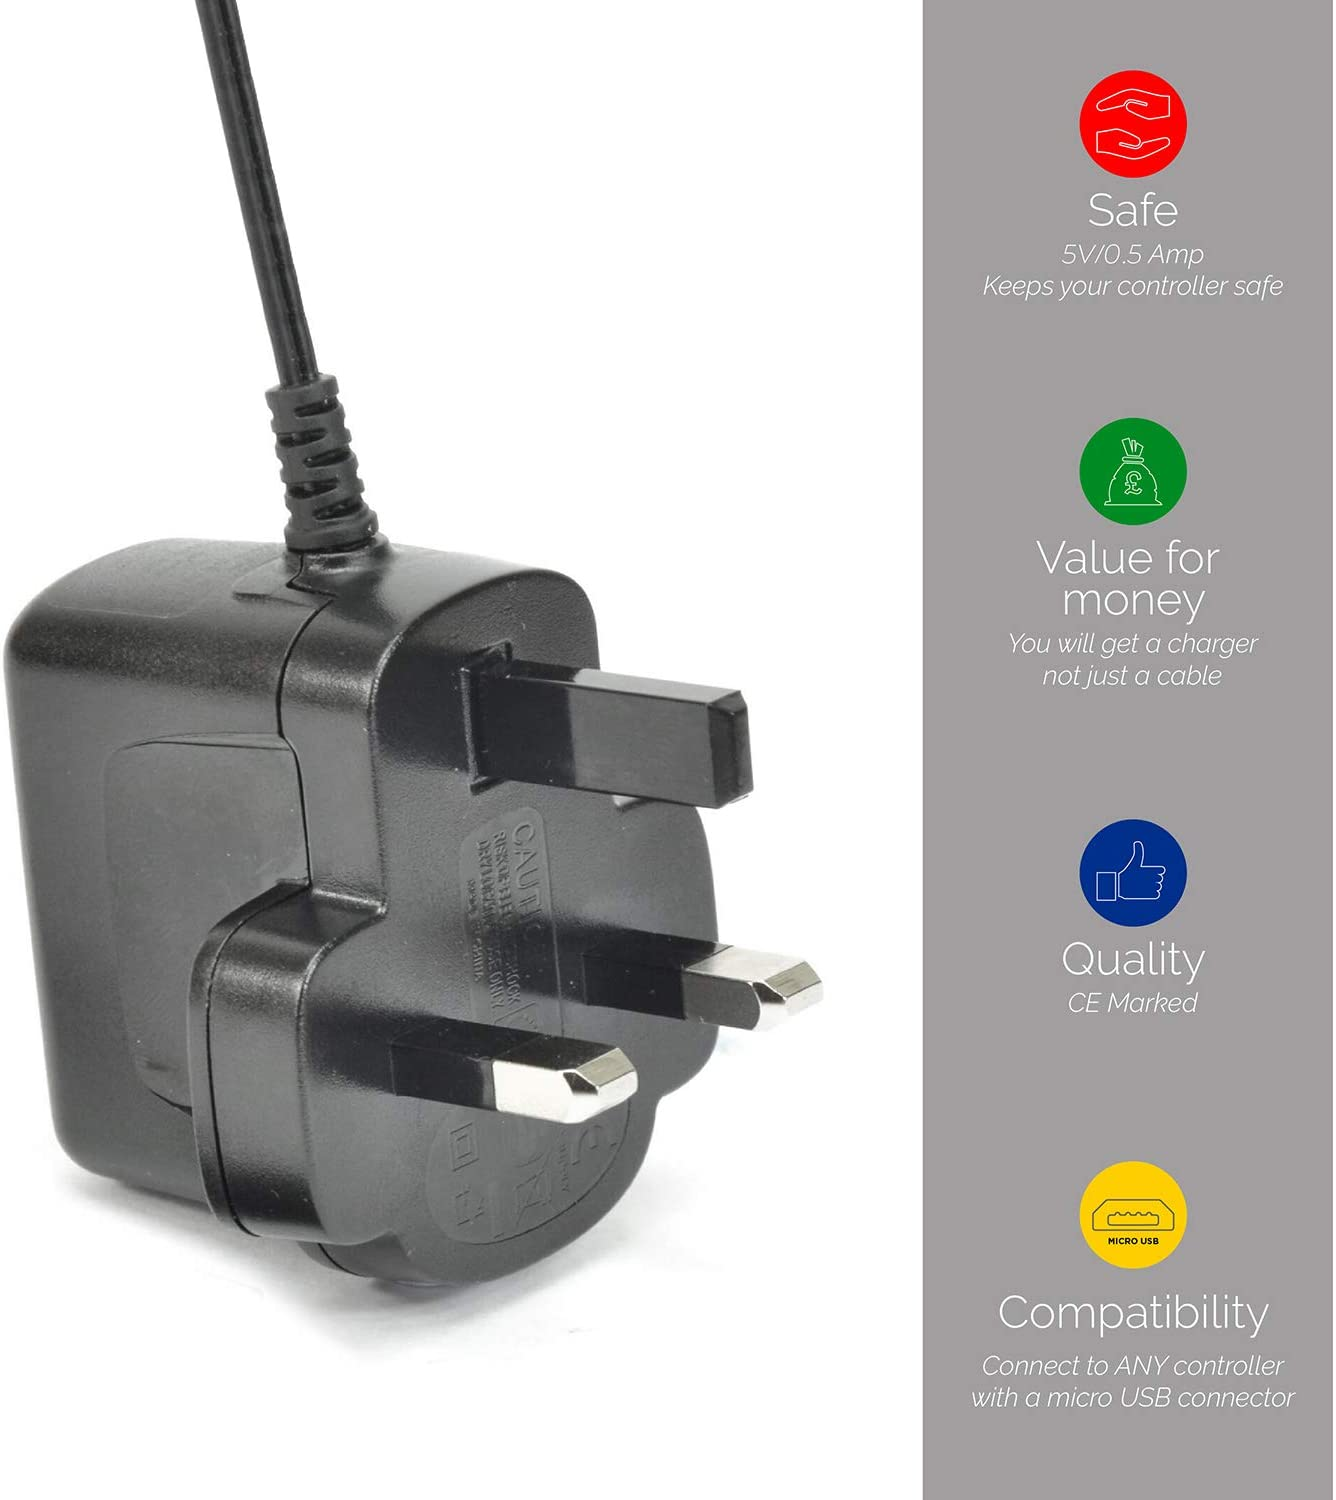 Safe Charging CE Marked Charger For Fast Micro USB Mains Charger for XBOX One Controllers 0.5amp 2m Lead with 5V 500mAh